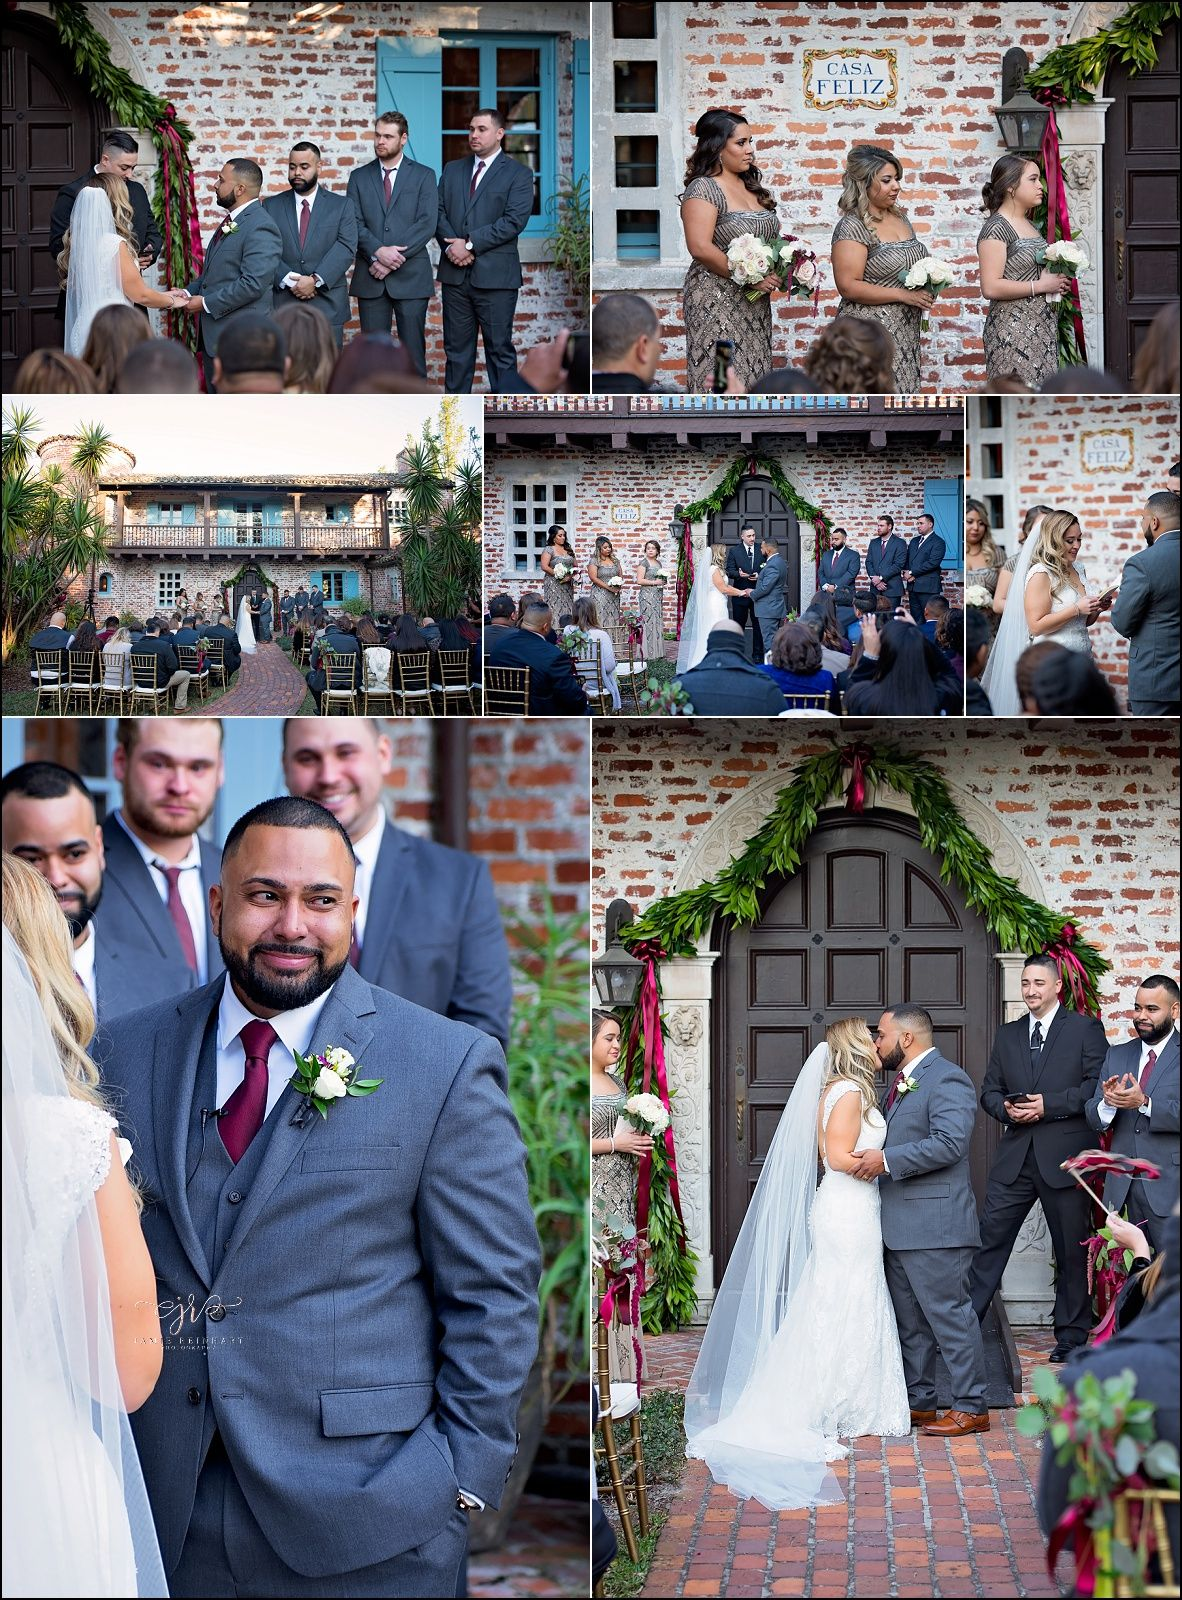 Wedding Ceremony In Front Of The Historical Casa Feliz A Venue Located Winter Park Florida Click To See More From This Vintage Inspired: Winter Wedding Venues In Florida At Reisefeber.org